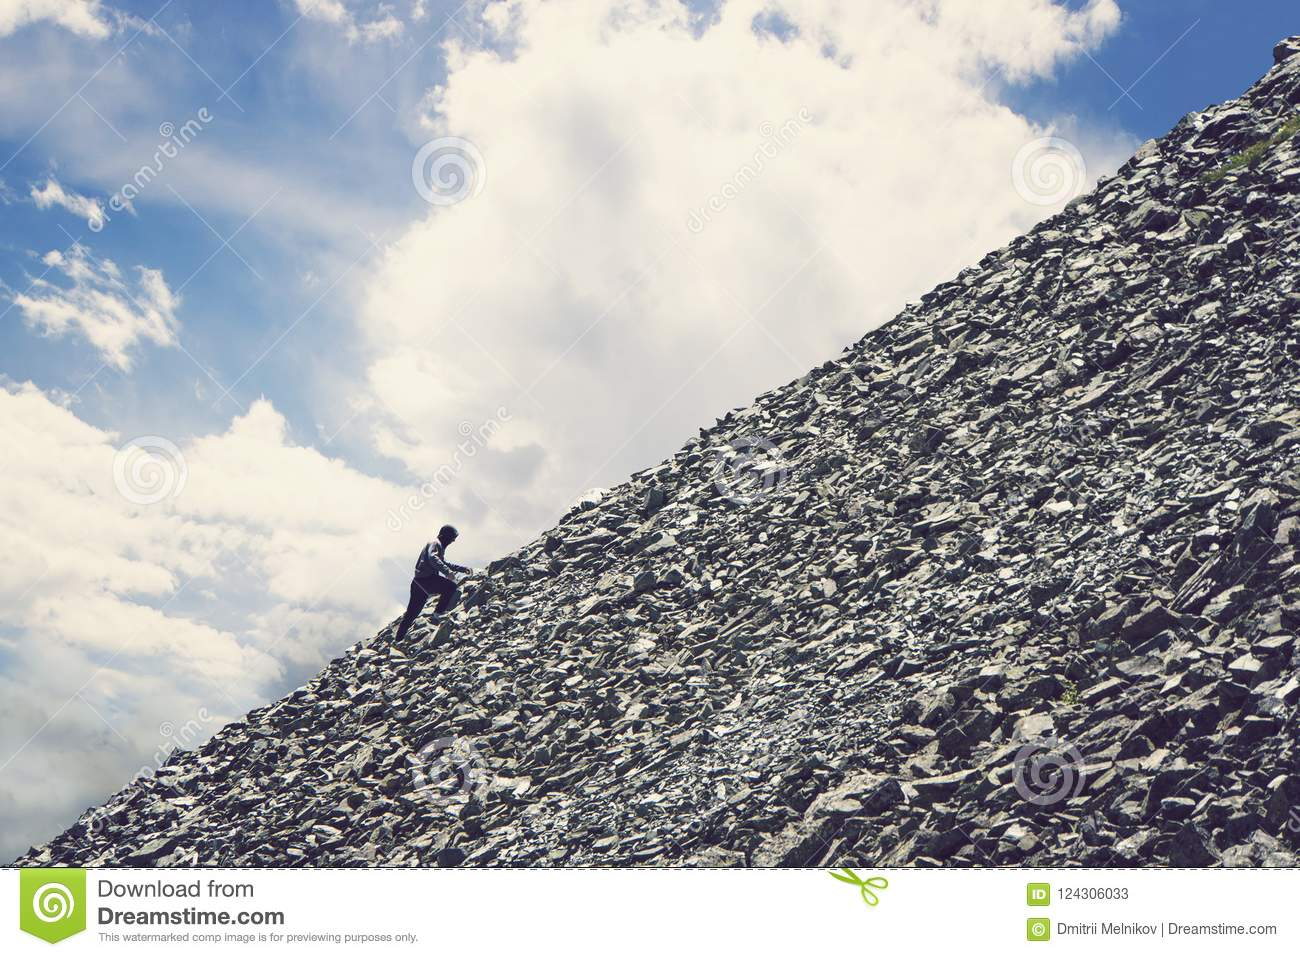 Amateur mountaineering against the blue sky with clouds. Man climbing up hill to reach the peak of the mountain. Persistence, dete